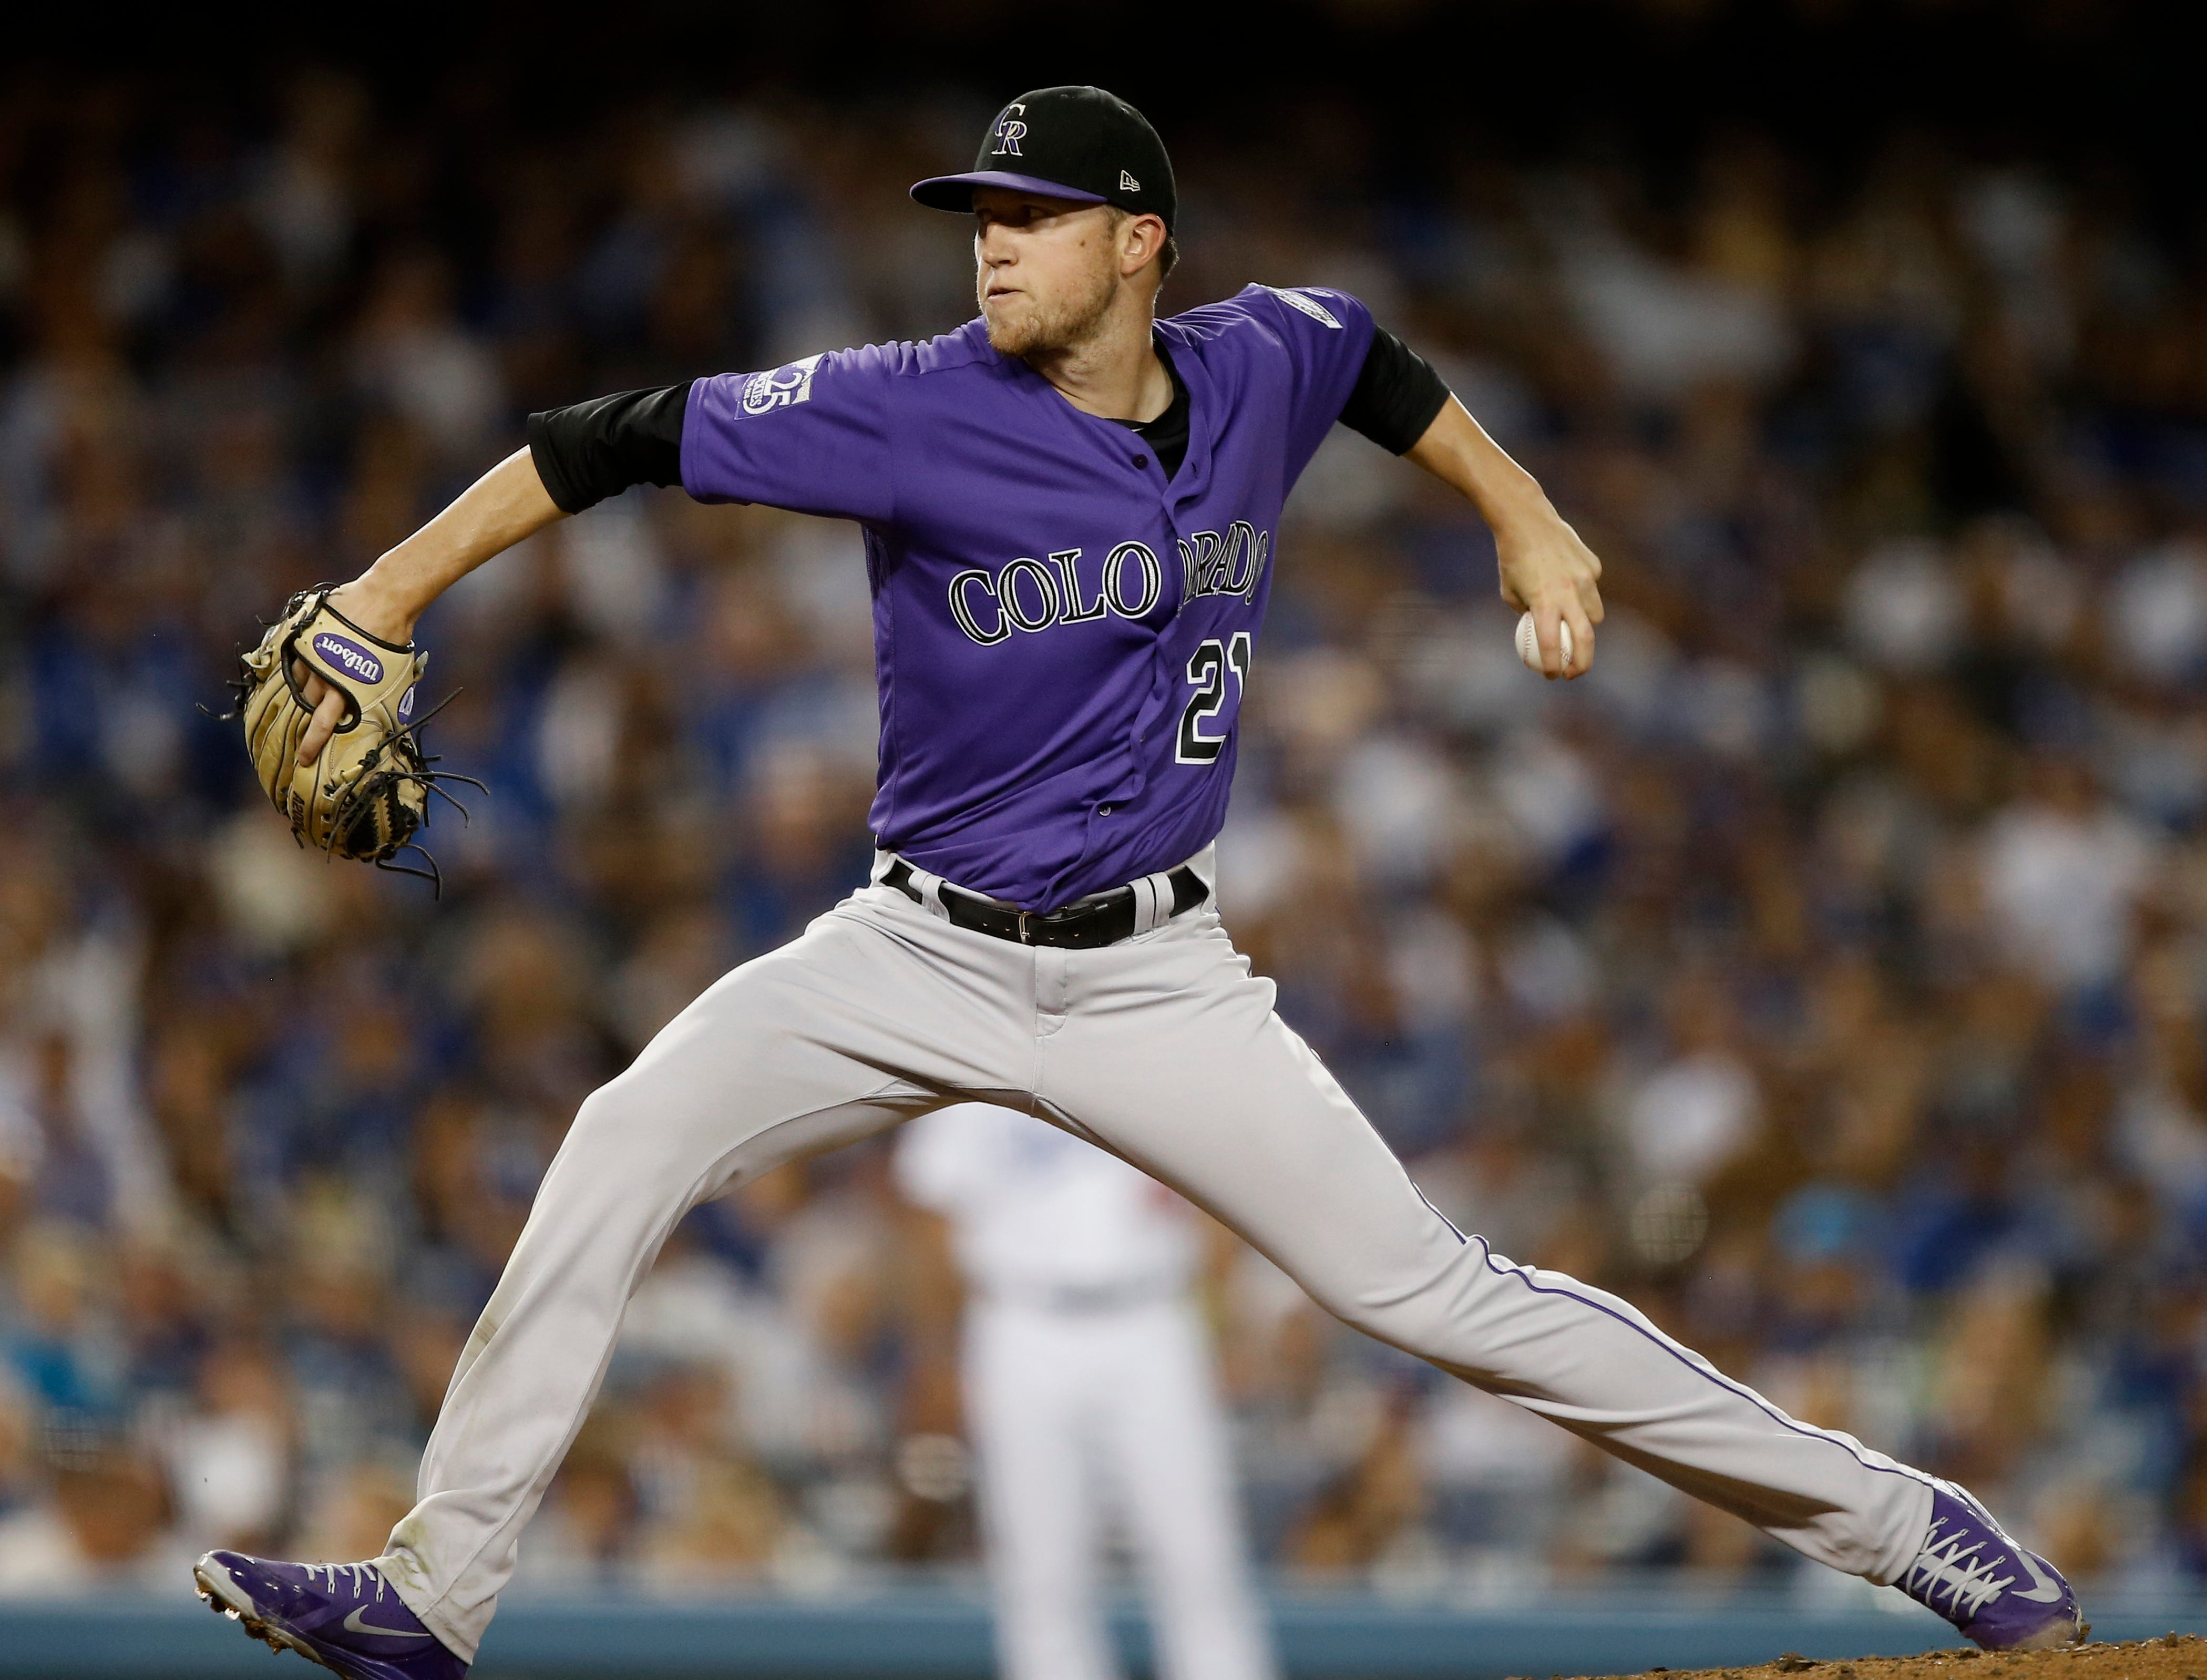 Colorado Rockies starting pitcher Kyle Freeland works to a Los Angeles Dodgers batter during the sixth inning of a baseball game in Los Angeles, Tuesday, Sept. 18, 2018. (AP Photo/Alex Gallardo)